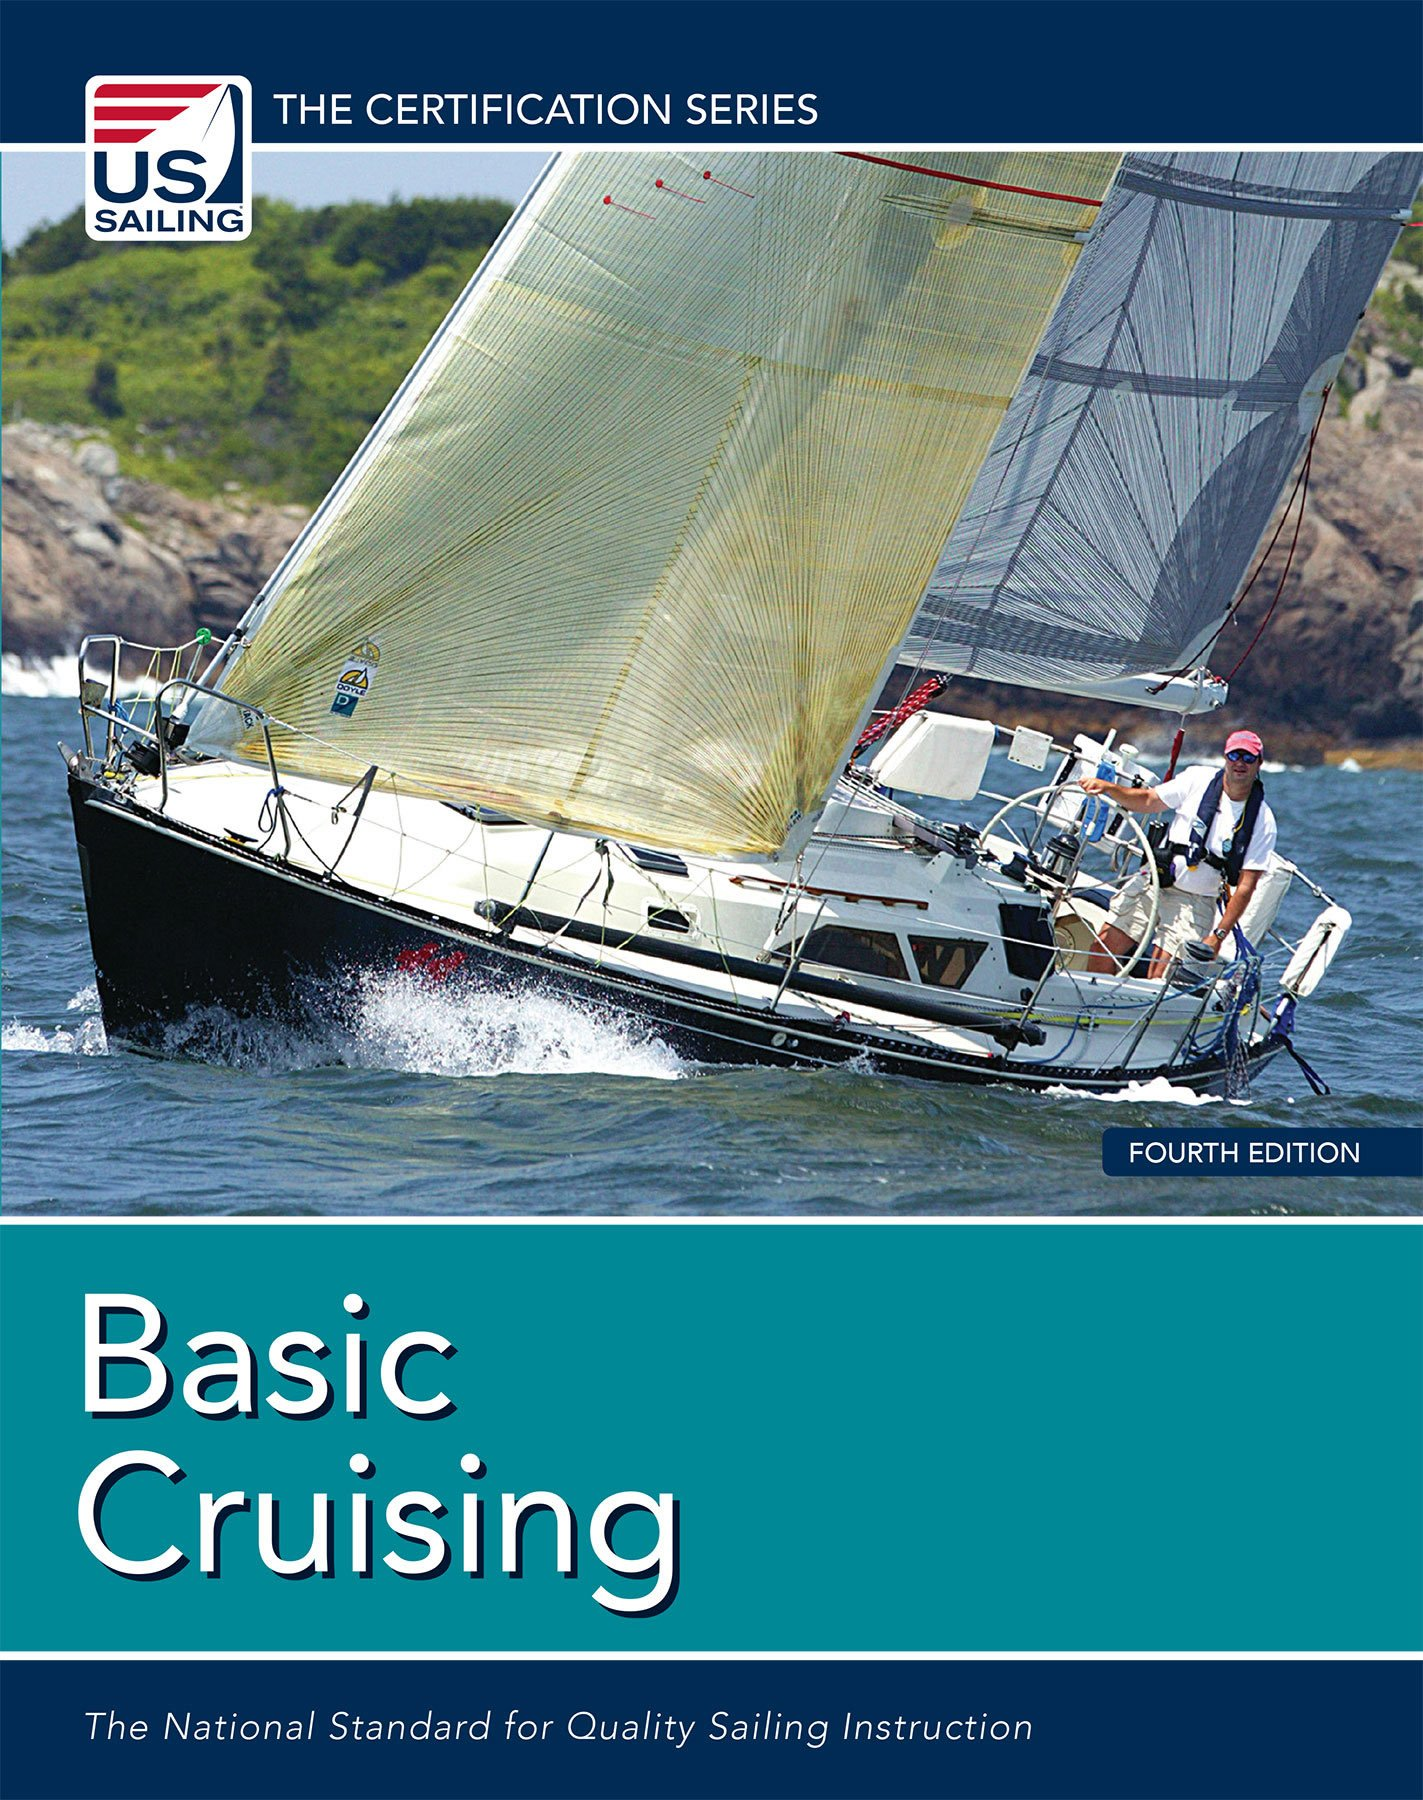 Basic cruising the national standard for quality sailing basic cruising the national standard for quality sailing instruction the certification series us sailing association dawn riley 9781882502974 1betcityfo Choice Image